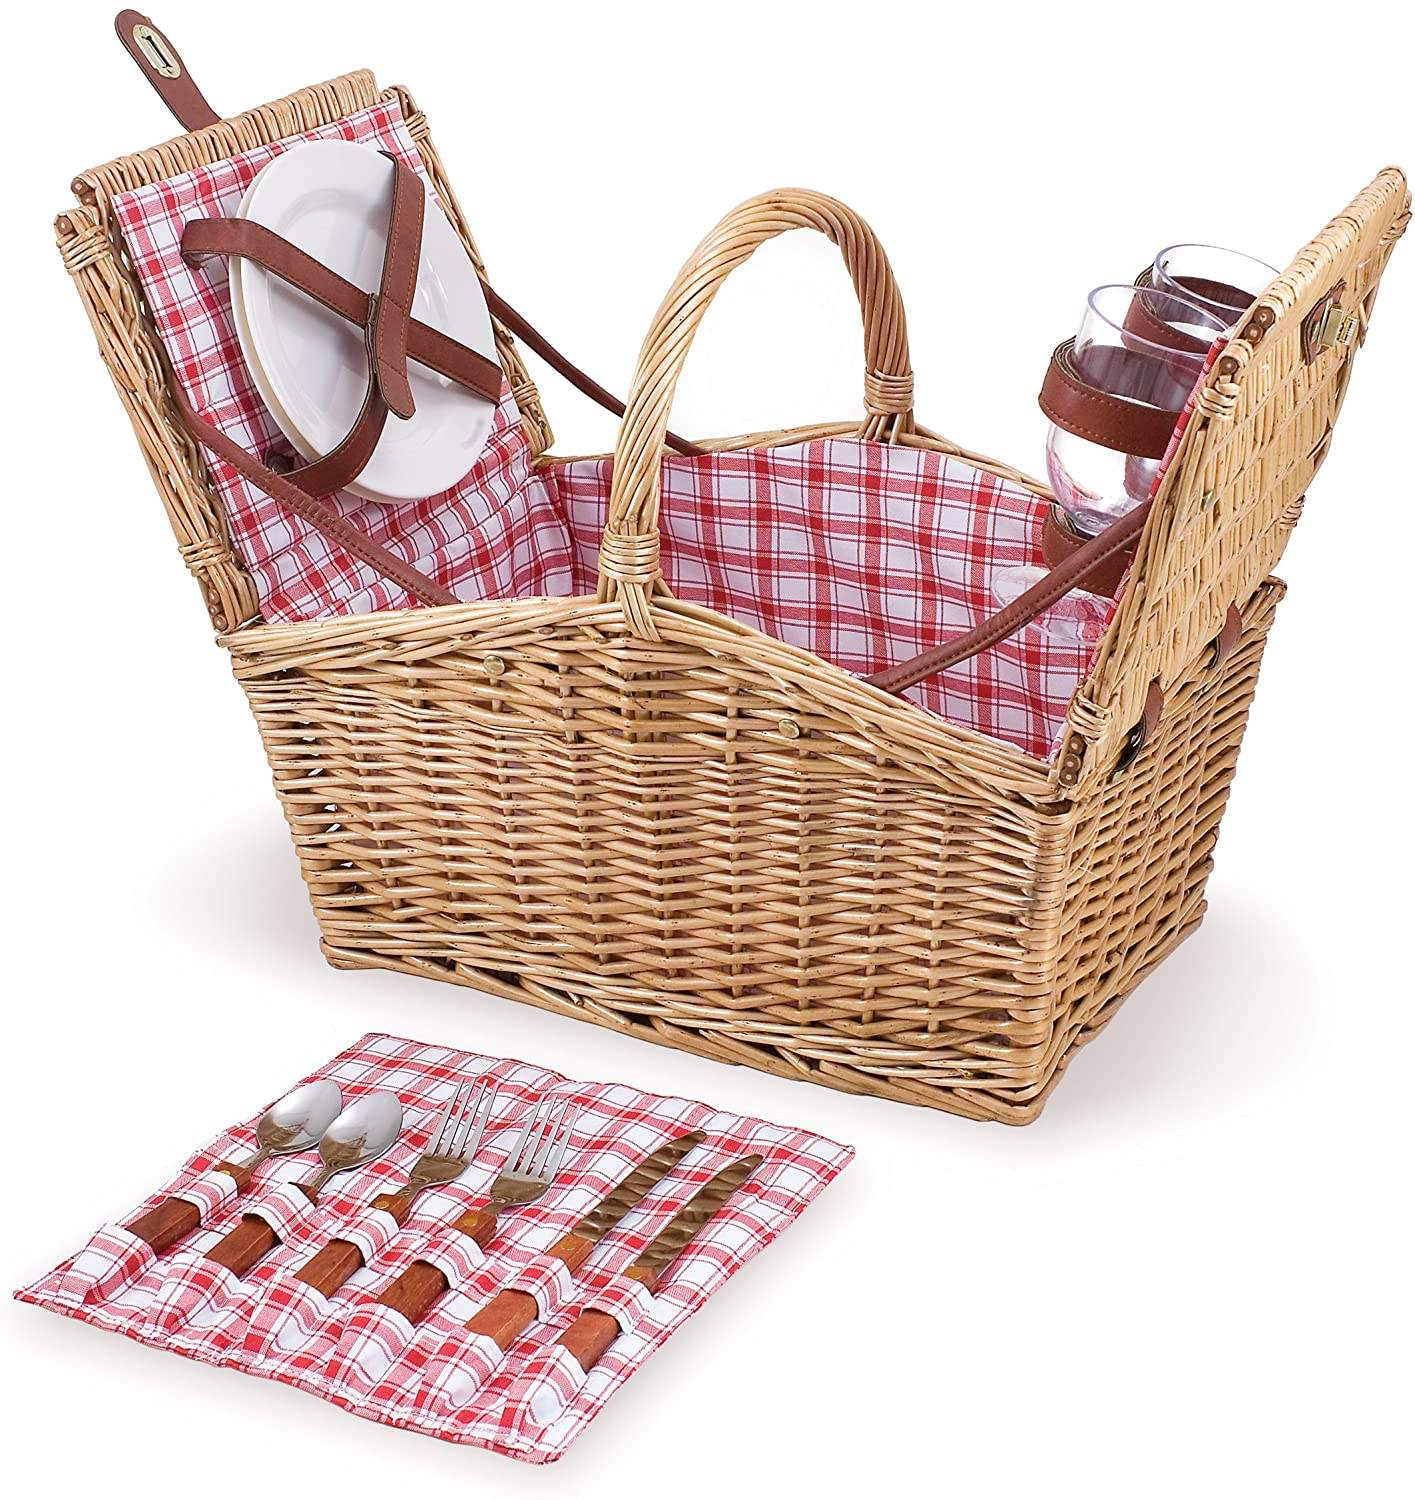 New Arrival Hand Made Custom Size Hand Woven Wicker Basket for Outdoor Travel Camping Picnic Road Trip